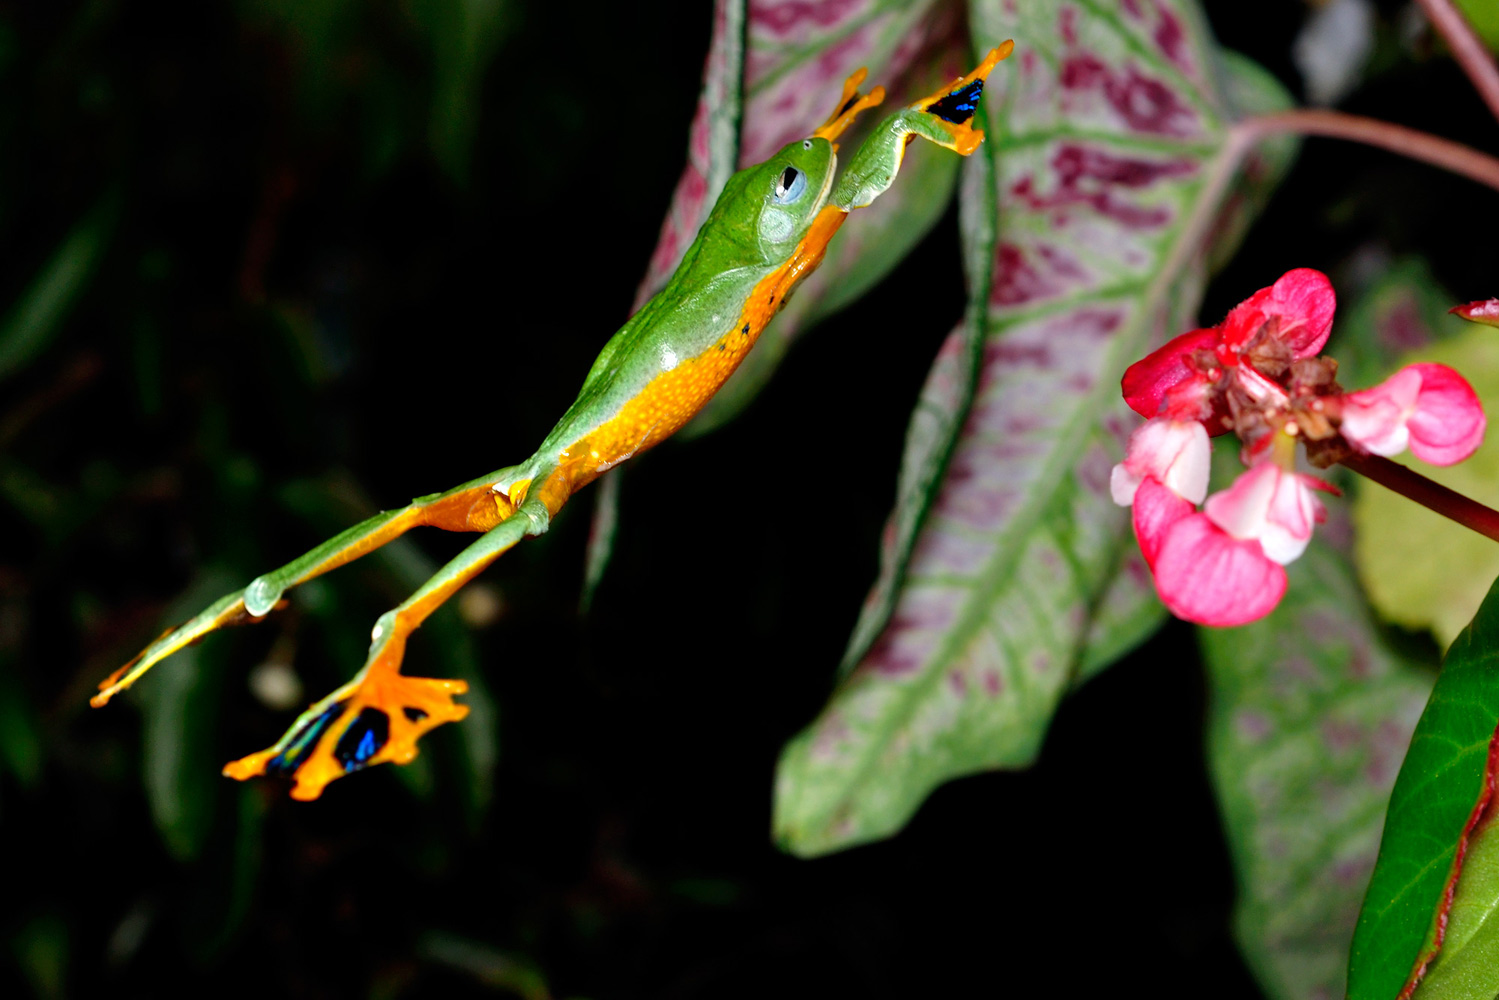 Bright green frog with yellow underbelly and splayed webbed feet leaps with legs sprawled at a pink flower